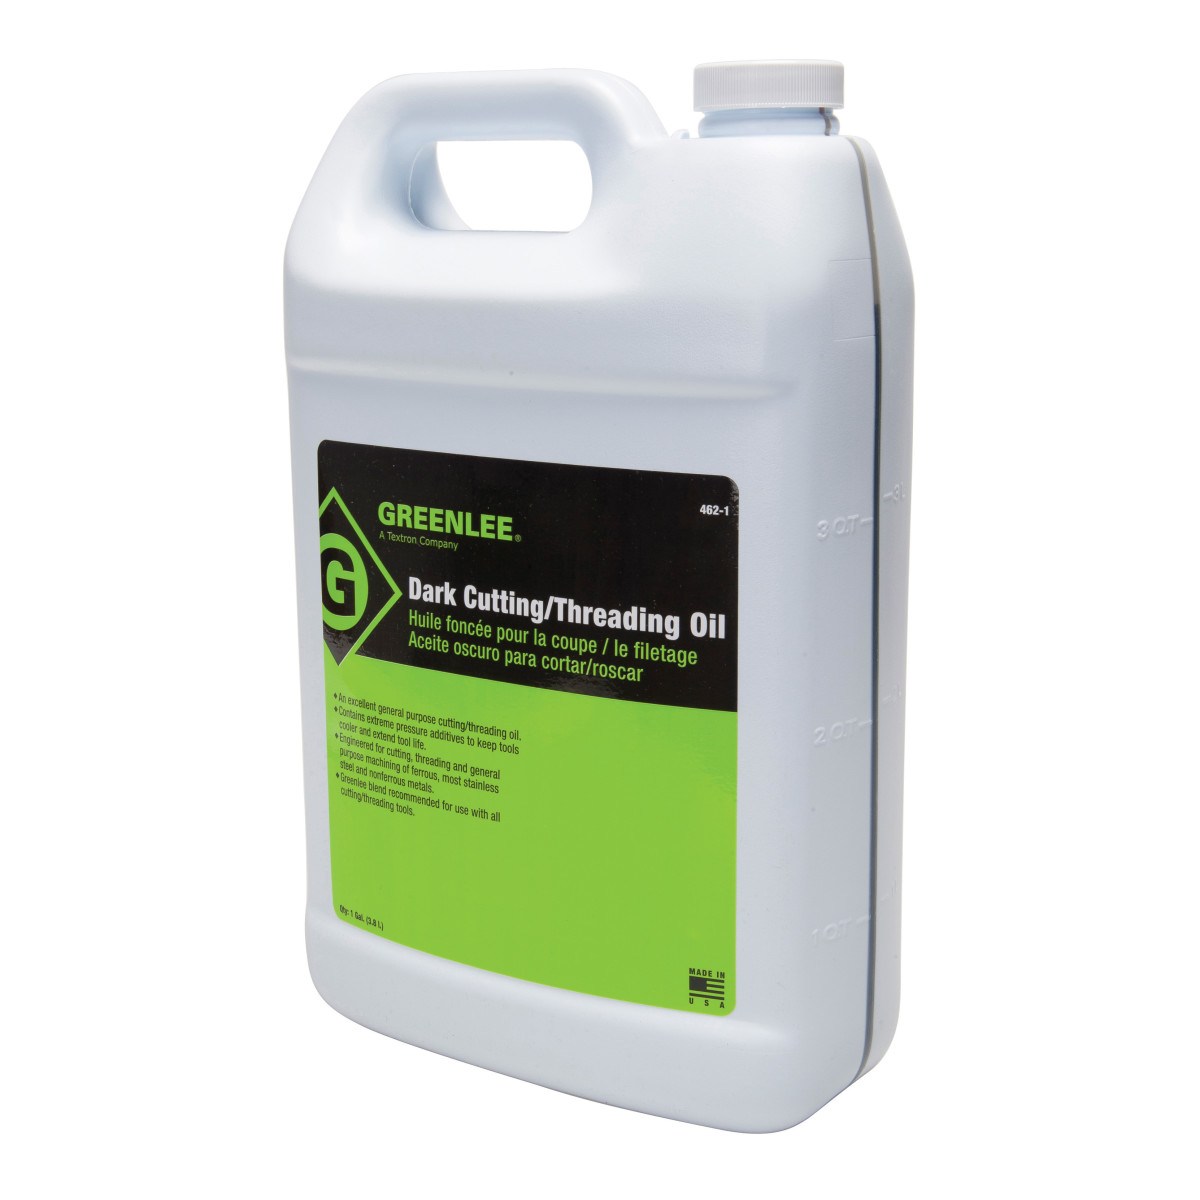 Greenlee 462-1 Dark Cutting / Threading Oil, 1-Gallon